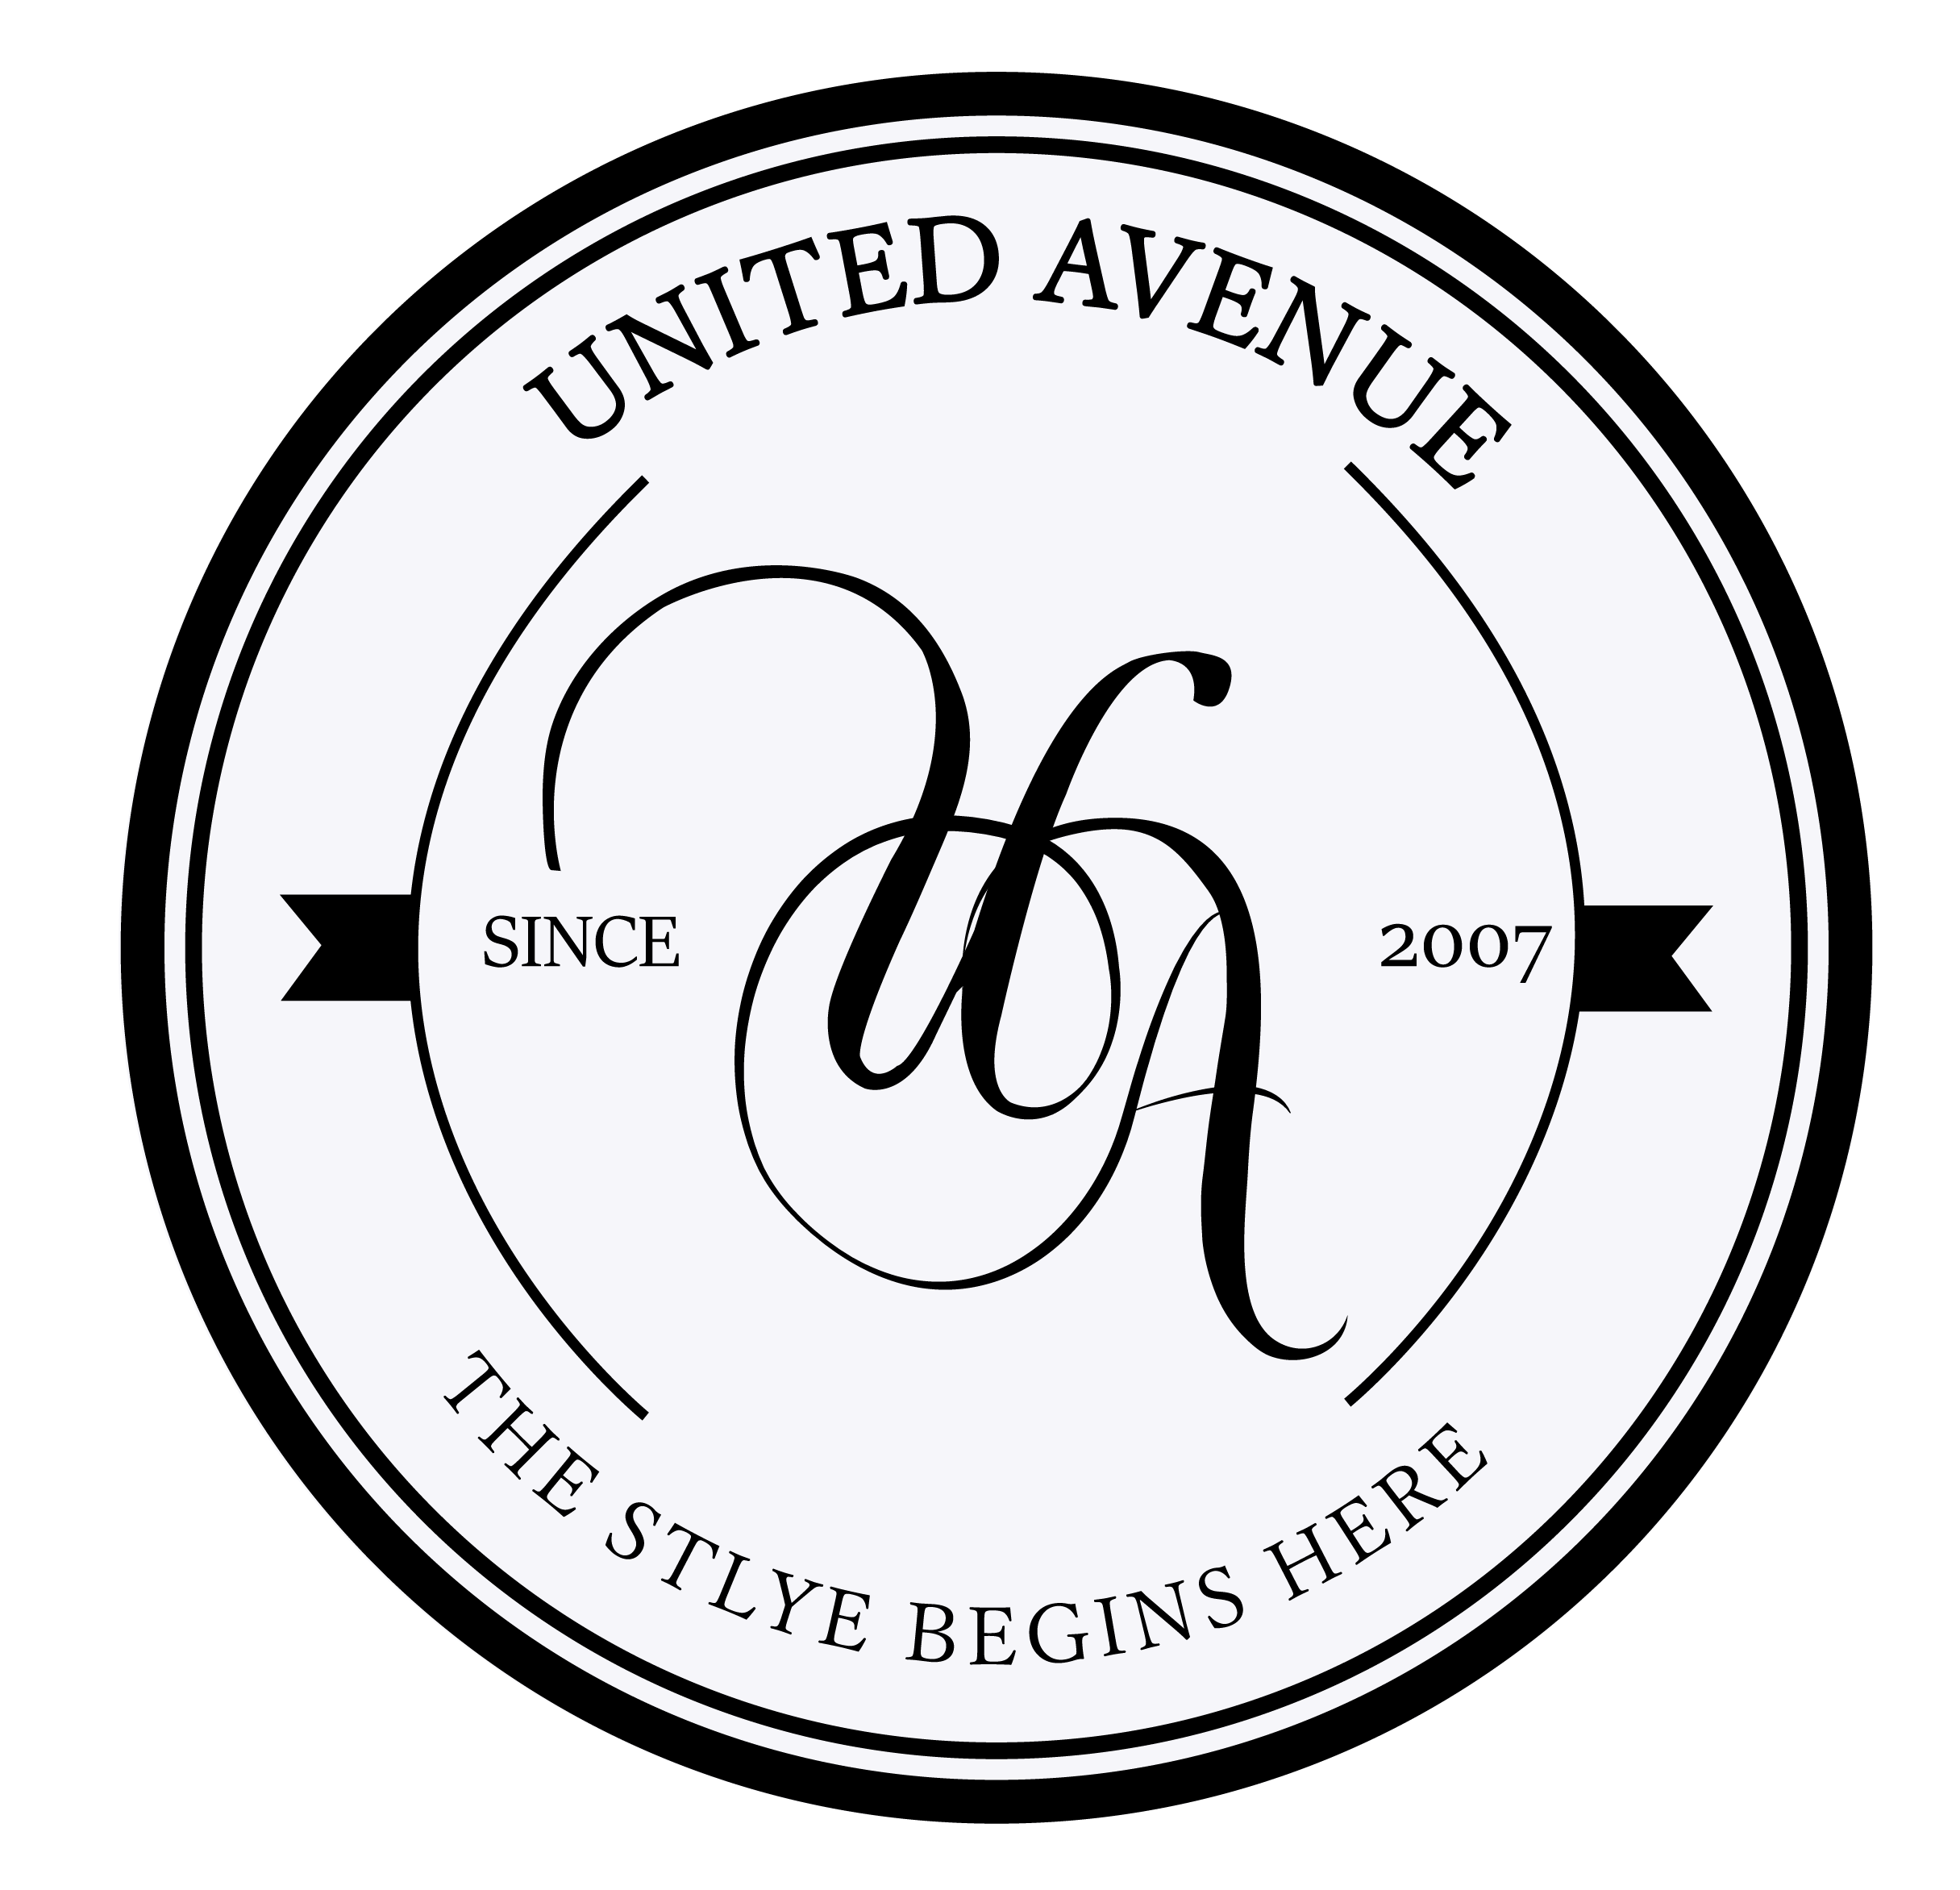 UA BOUTIQUE - The Style Begins Here